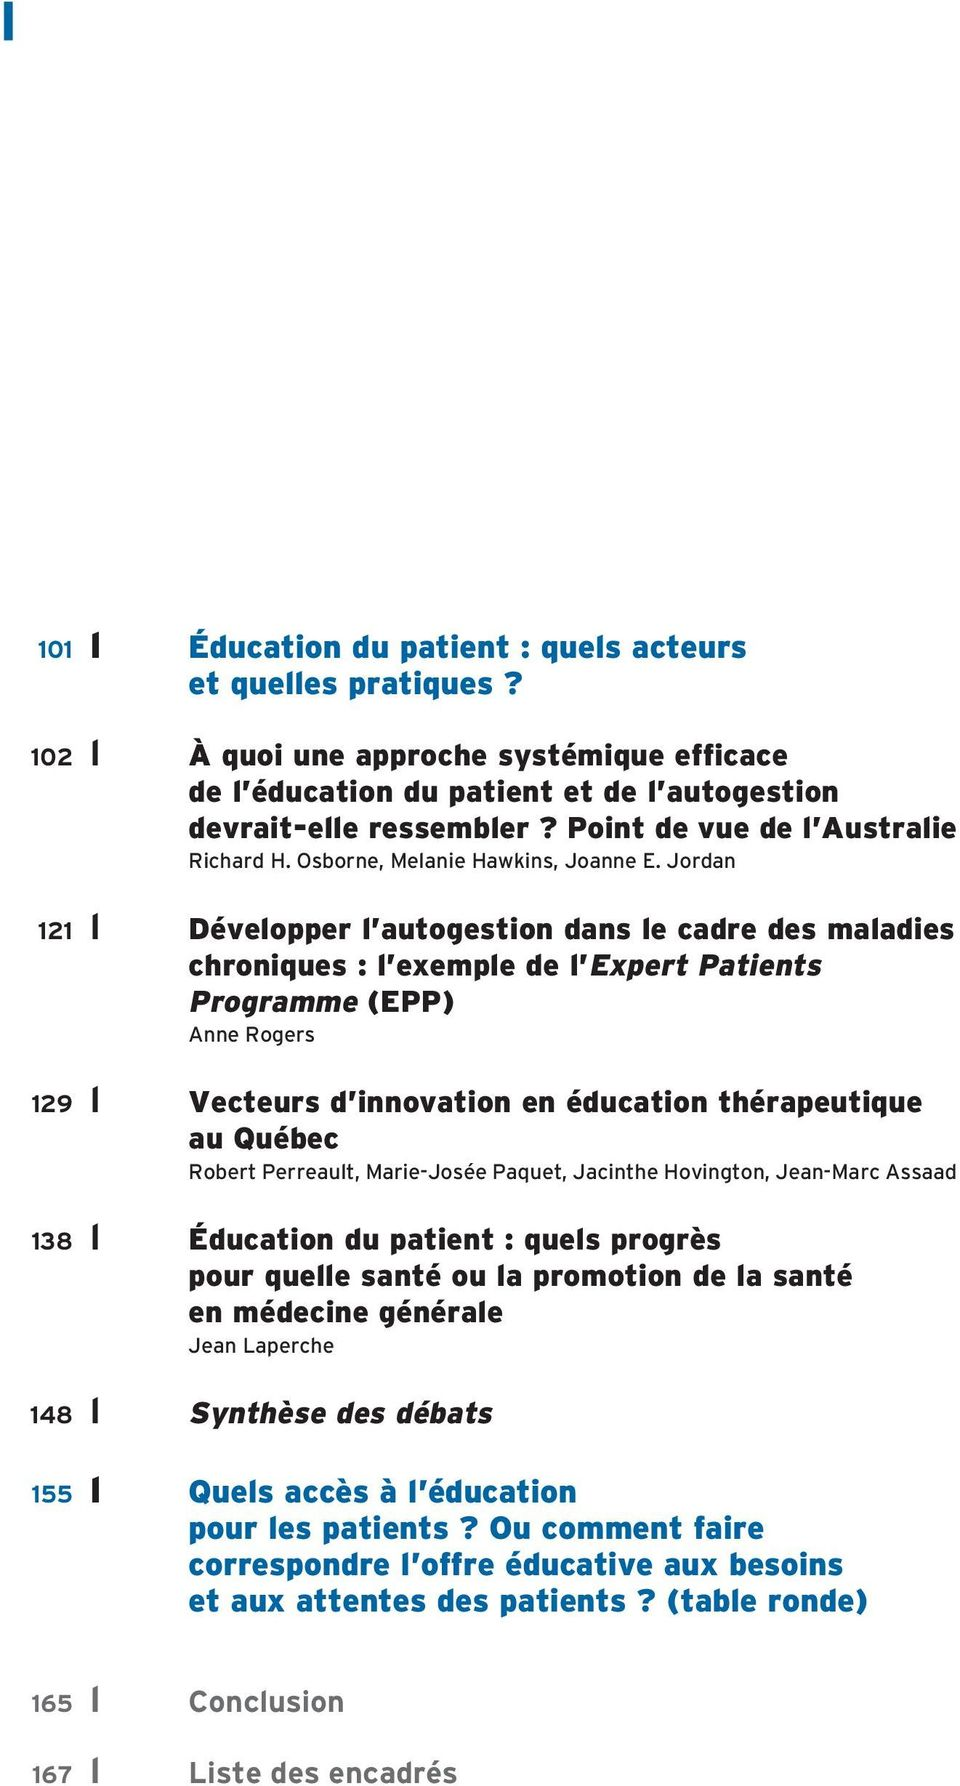 Jordan 121 l Développer l autogestion dans le cadre des maladies chroniques : l exemple de l Expert Patients Programme (EPP) Anne Rogers 129 l Vecteurs d innovation en éducation thérapeutique au